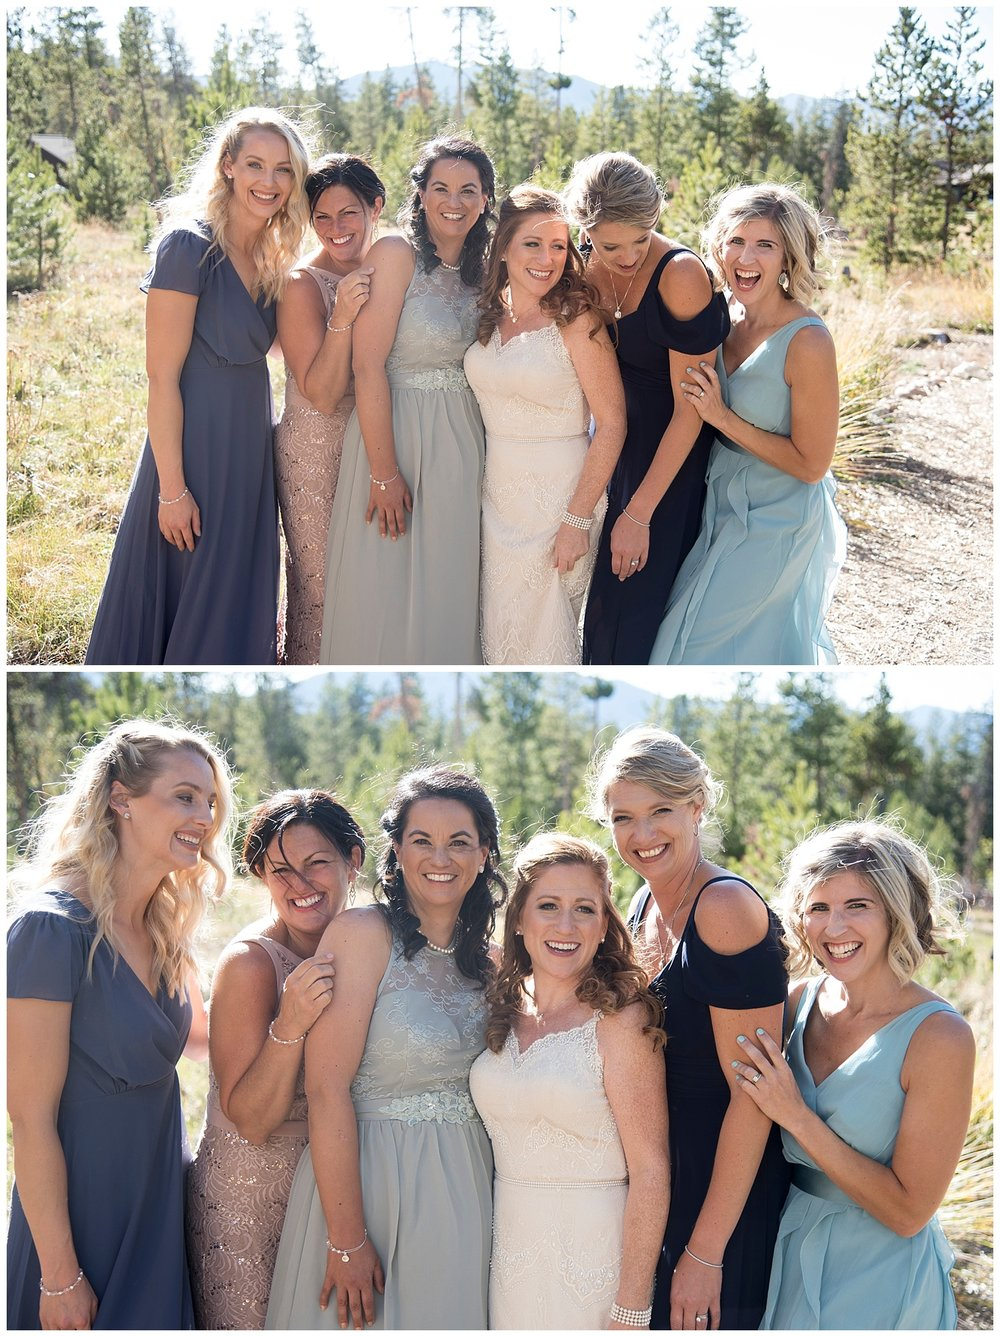 Bridesmaids Laughing | Carolyn and Shawn's Wild Horse Inn Wedding at Devil's Thumb Ranch | Fraser Colorado Photography | Farm Wedding Photographer | Apollo Fields Wedding Photojournalism